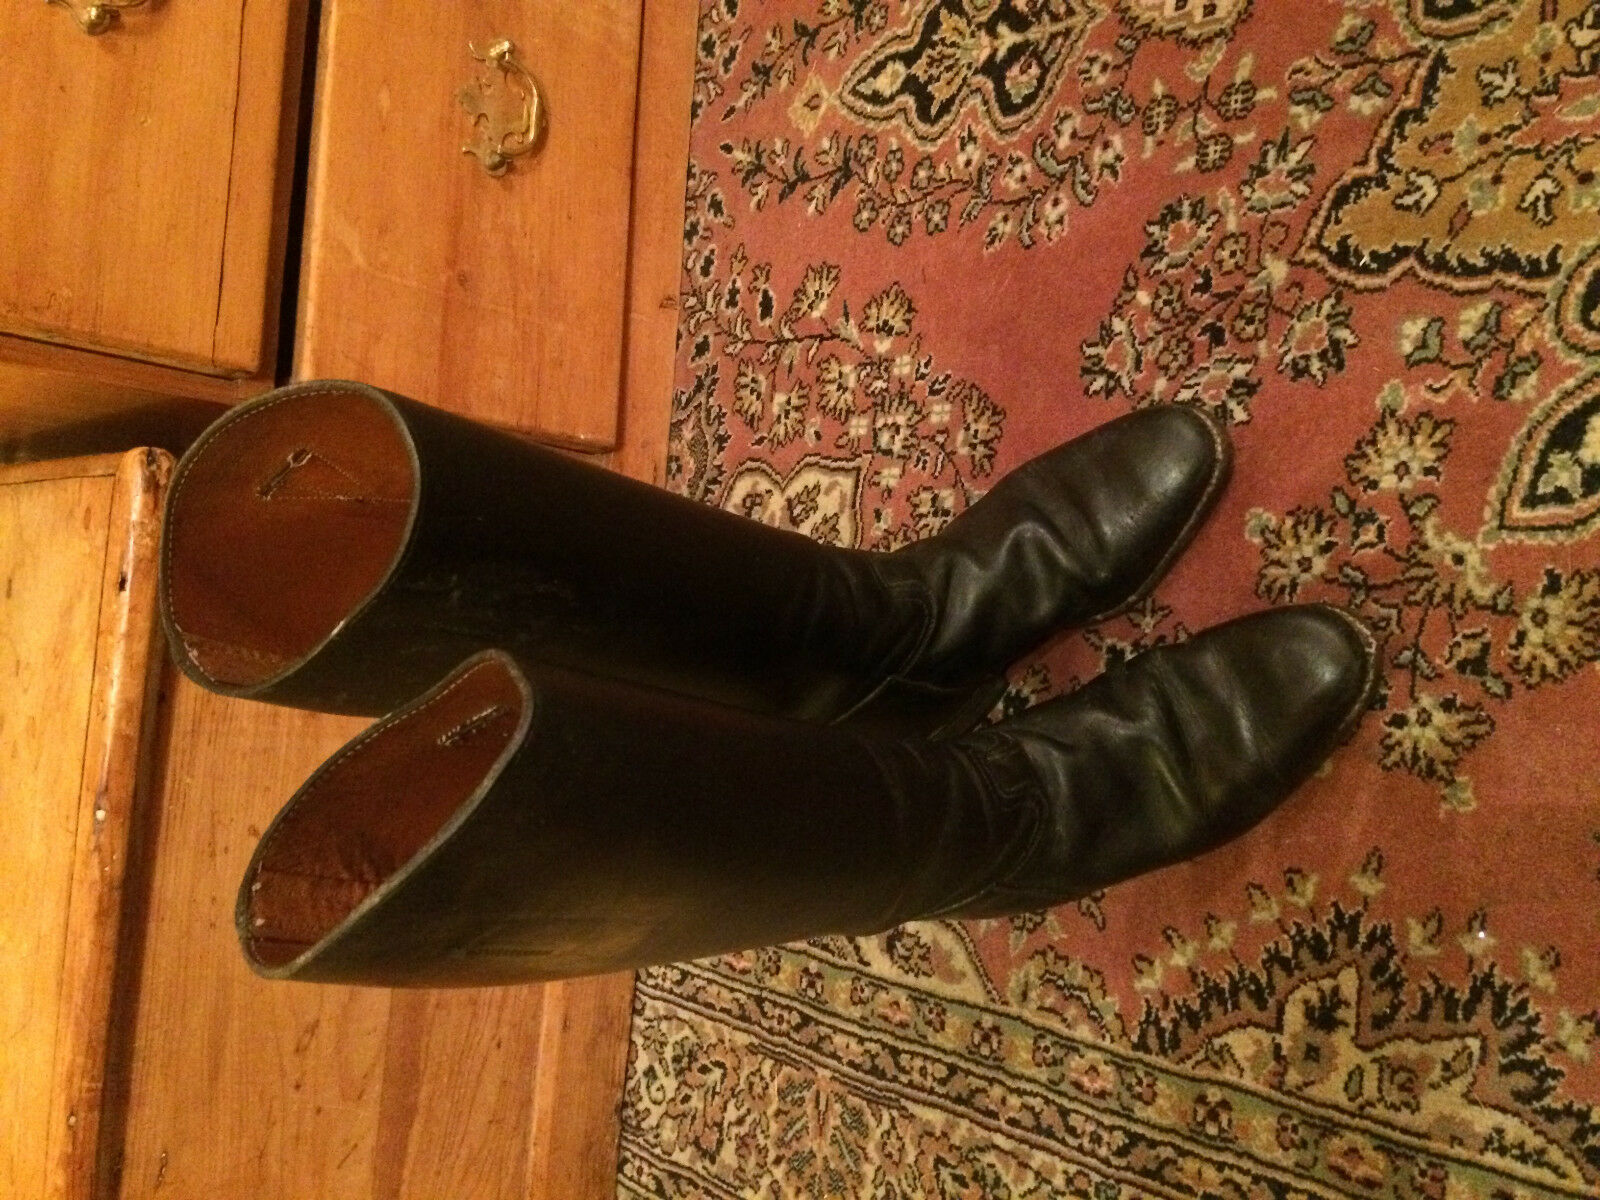 Ladies Konig long leather riding hunting boots size 4 re-soled and heeled - vgc.